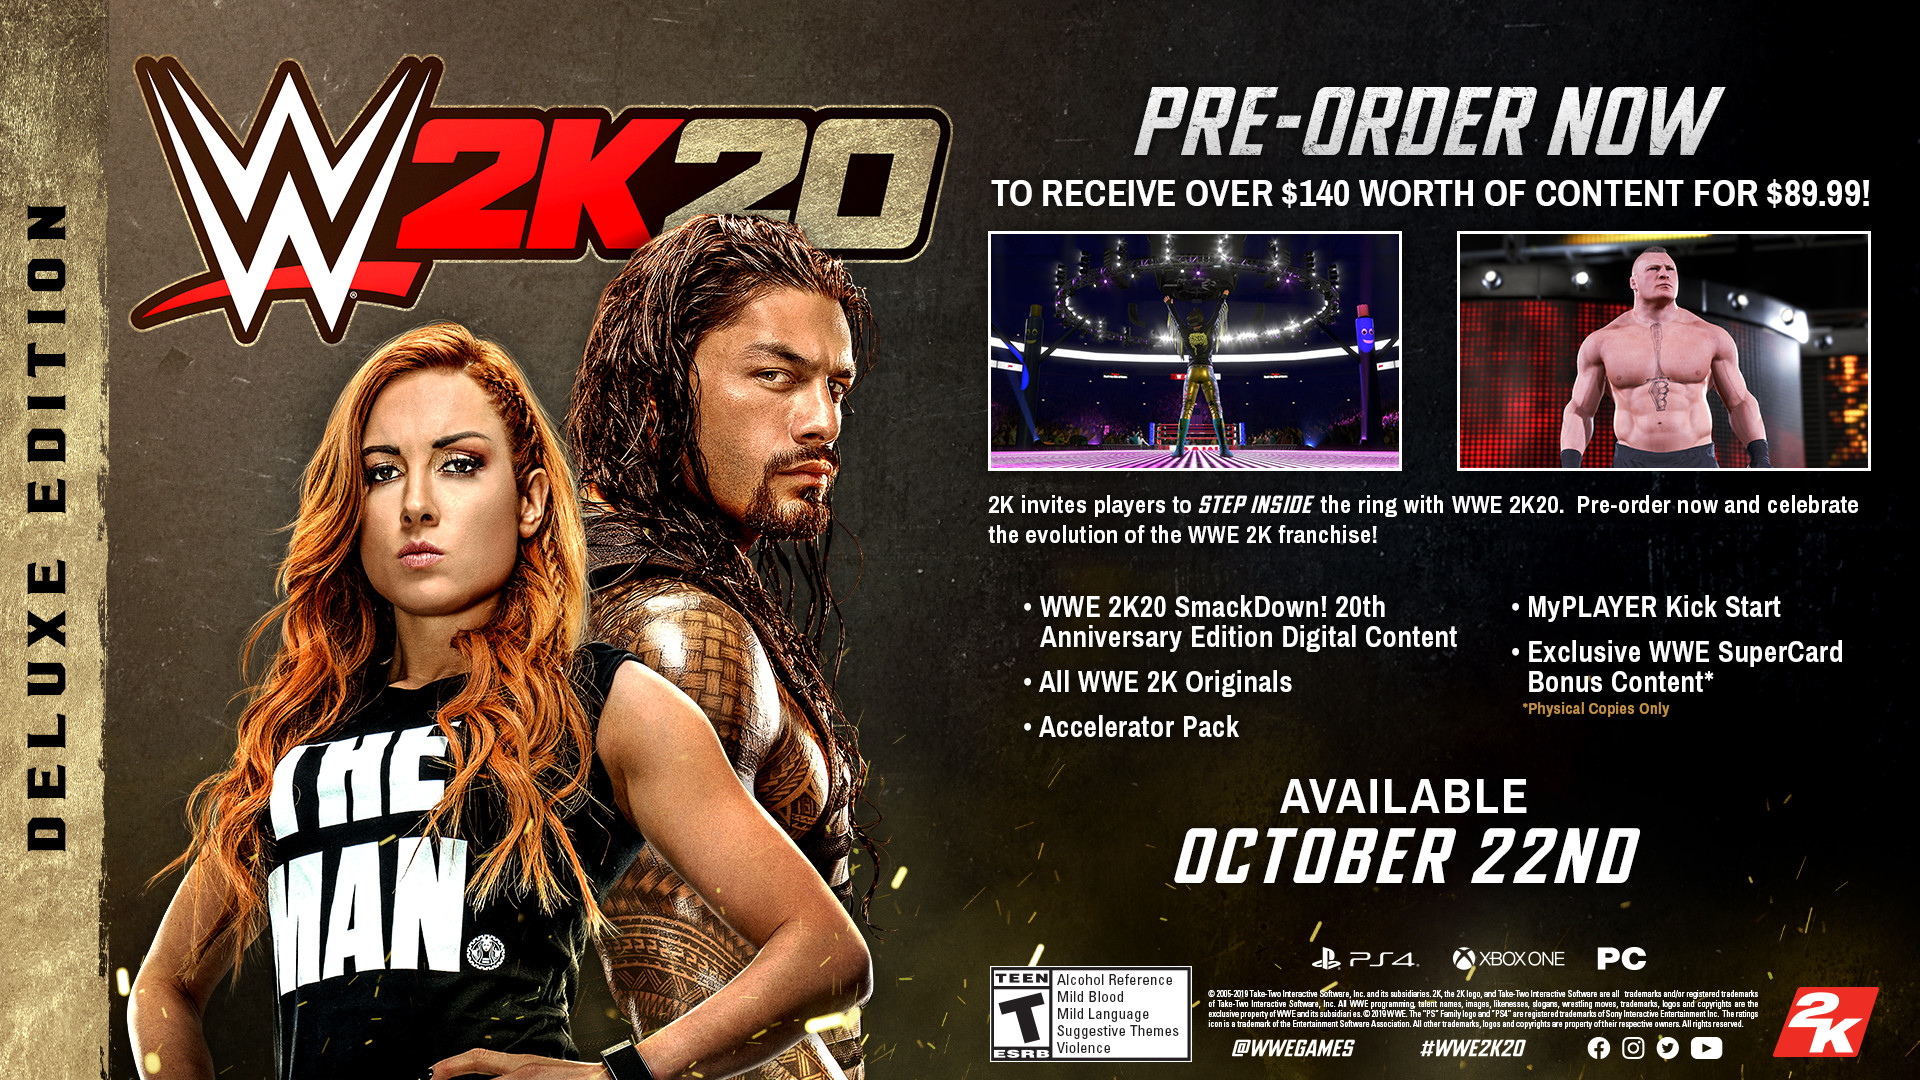 Find the best laptop for WWE 2K20